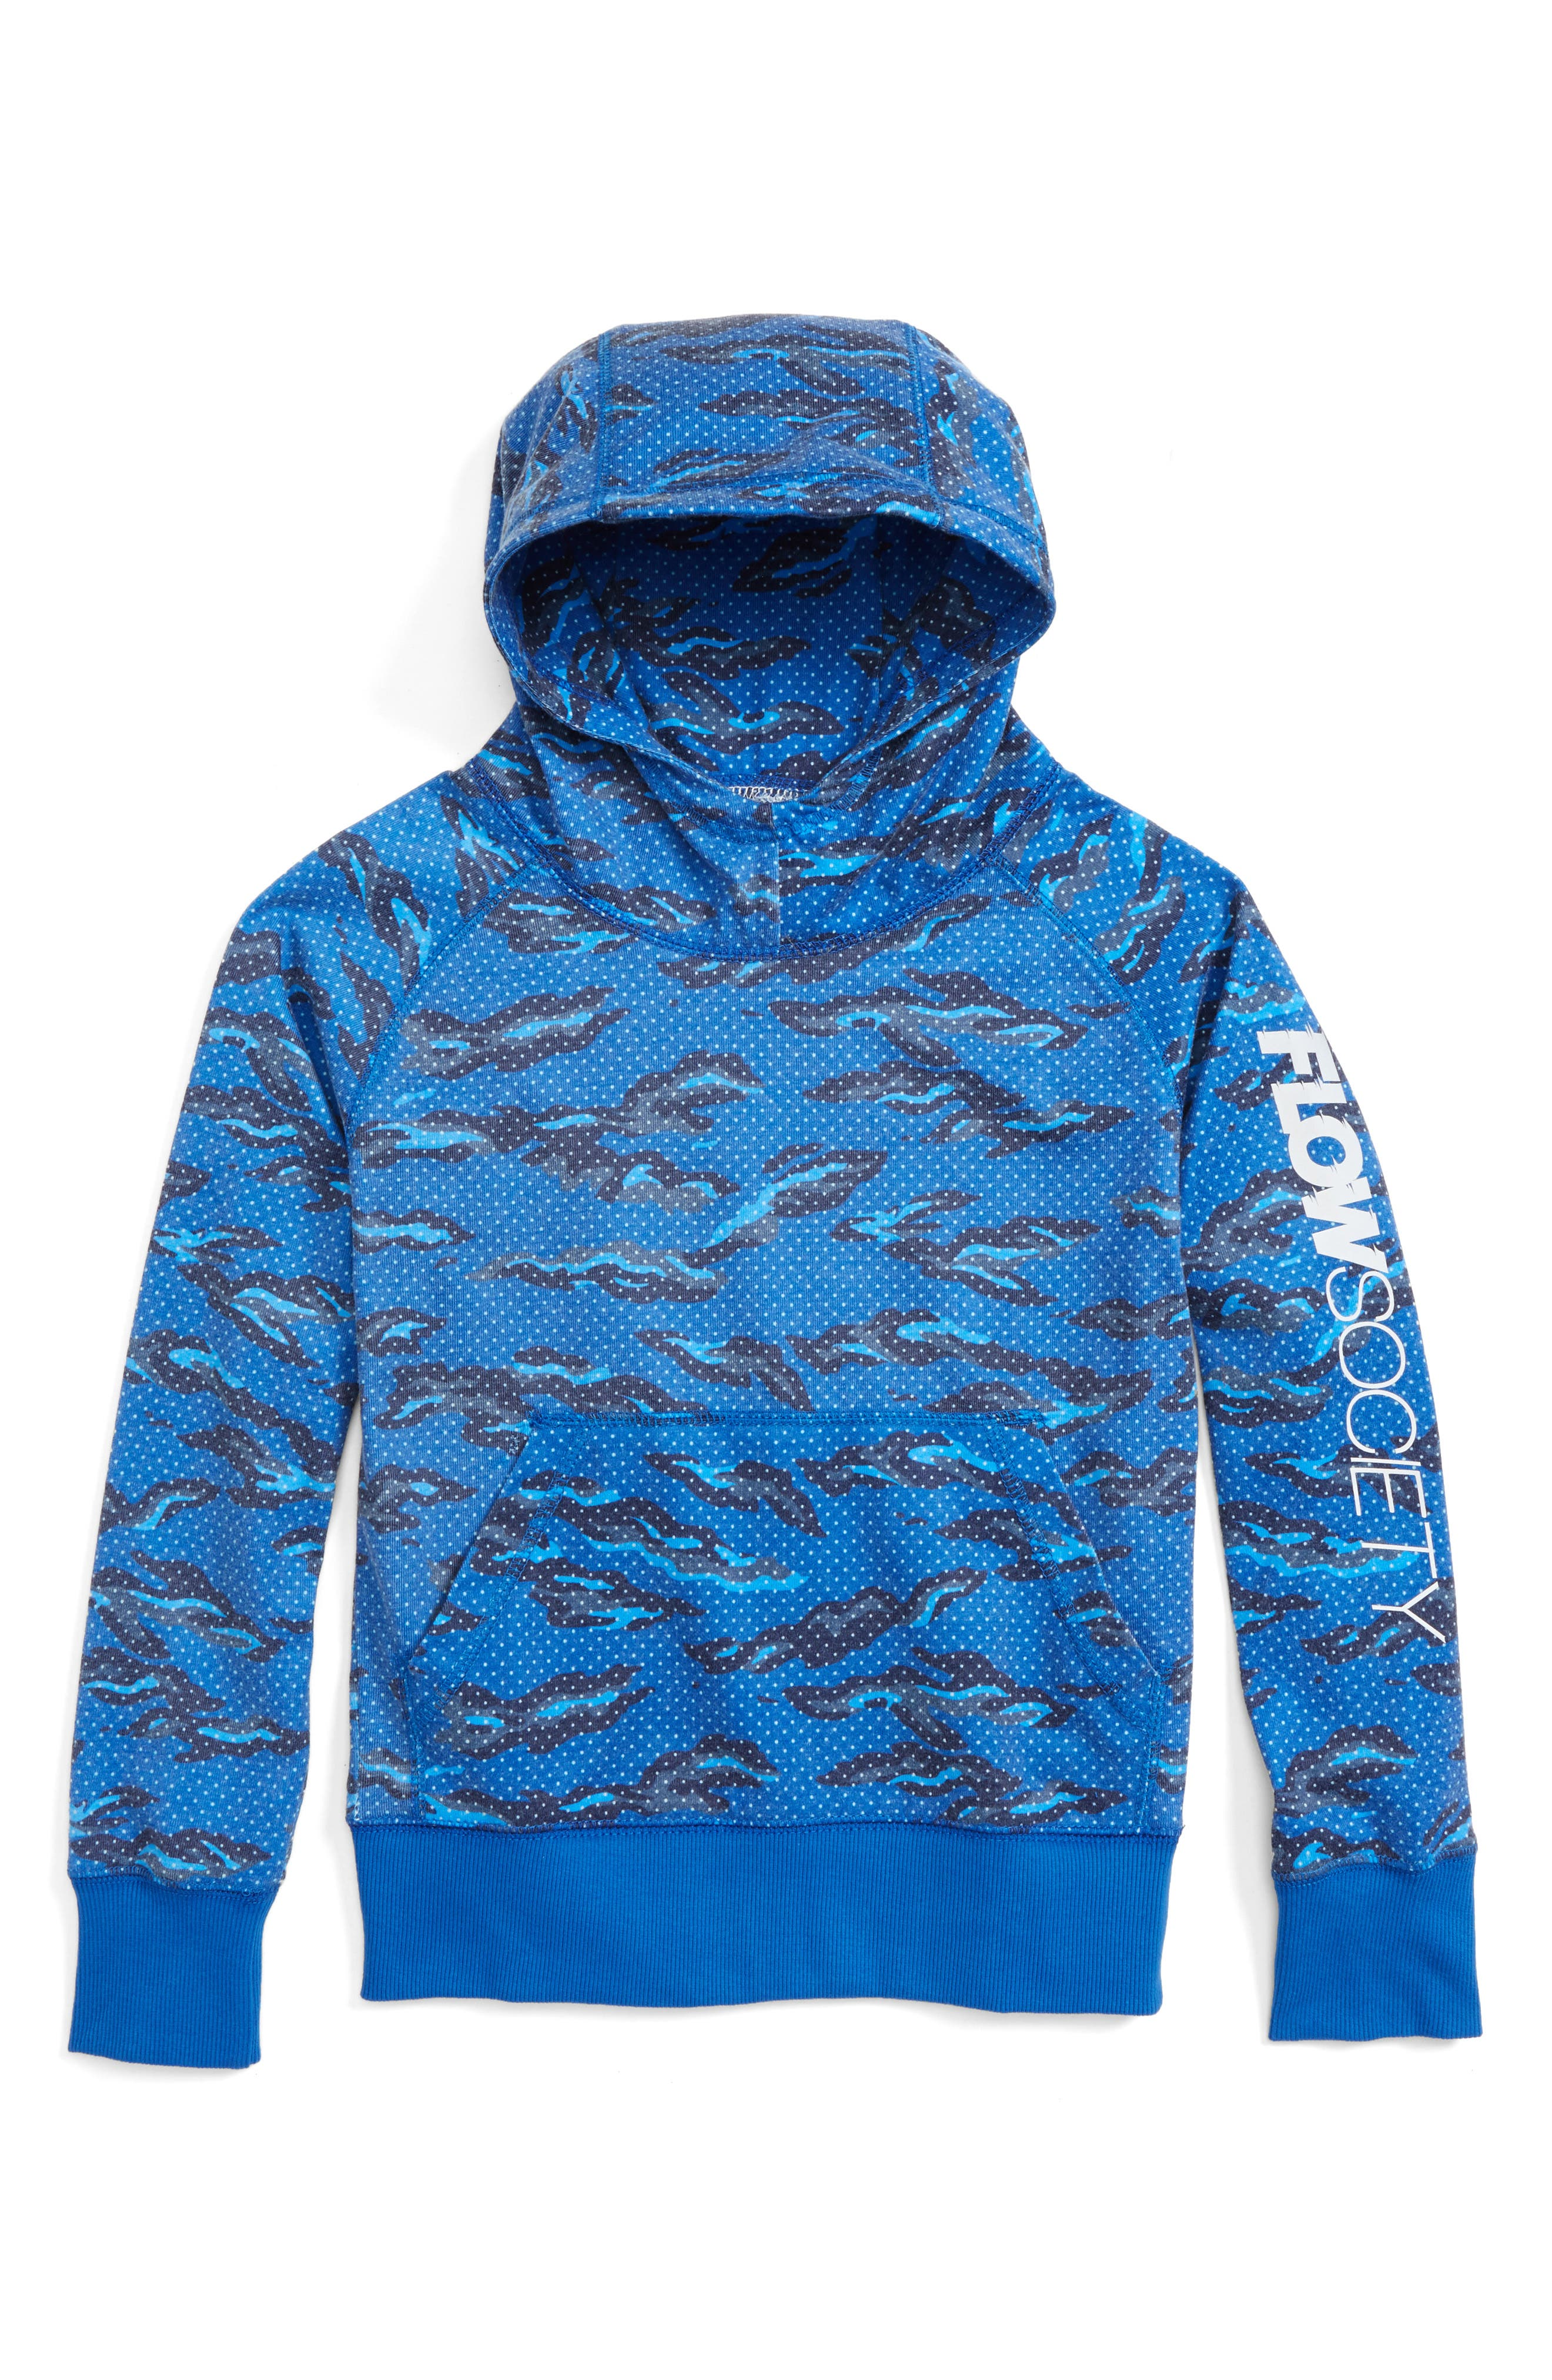 FLOW SOCIETY Pacific Hoodie